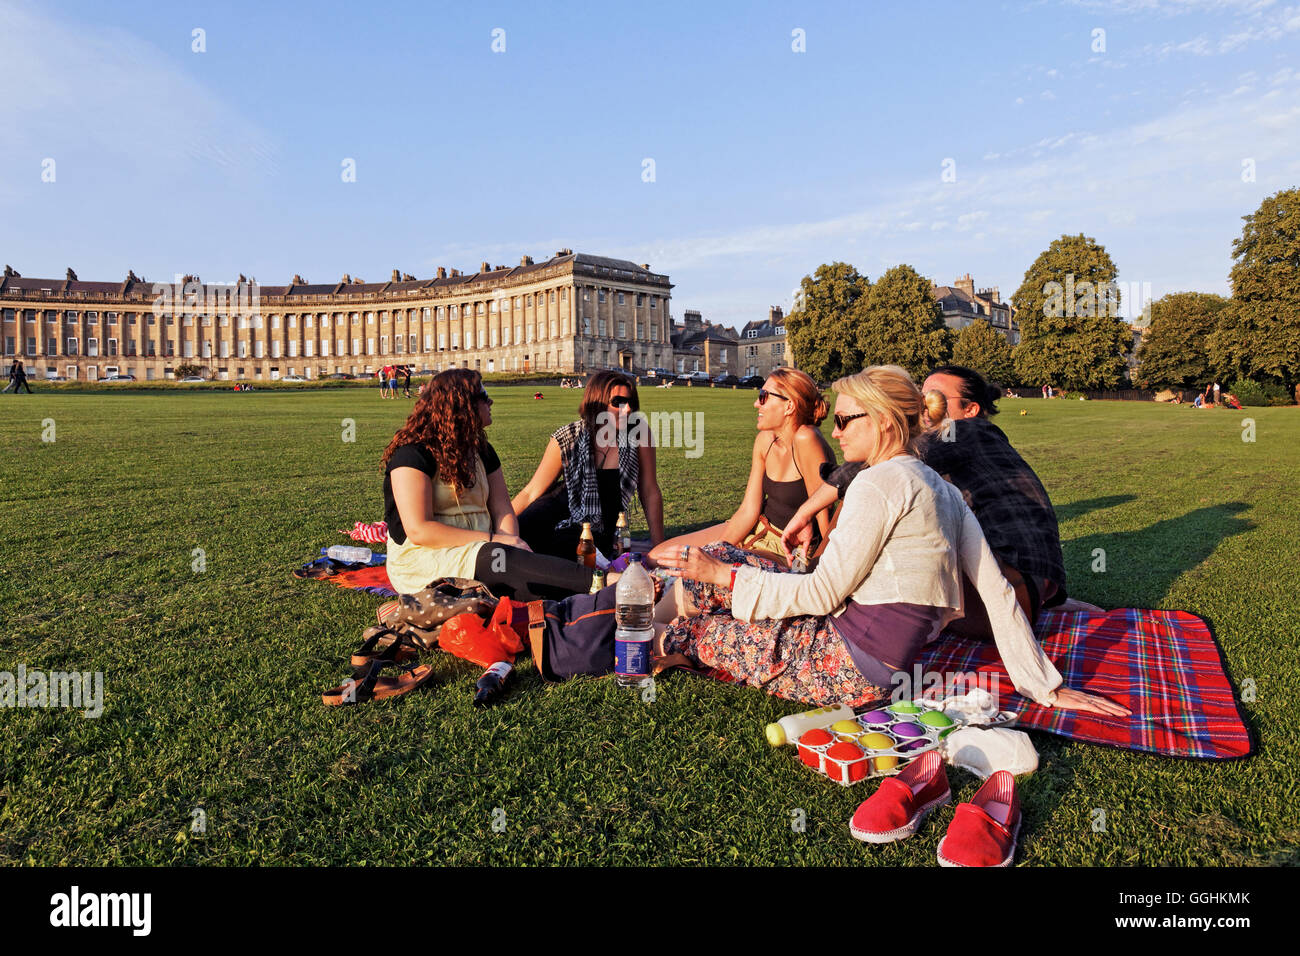 Picnic on the lawn at Royal Crescent, Bath, Somerset, England, Great Britain - Stock Image